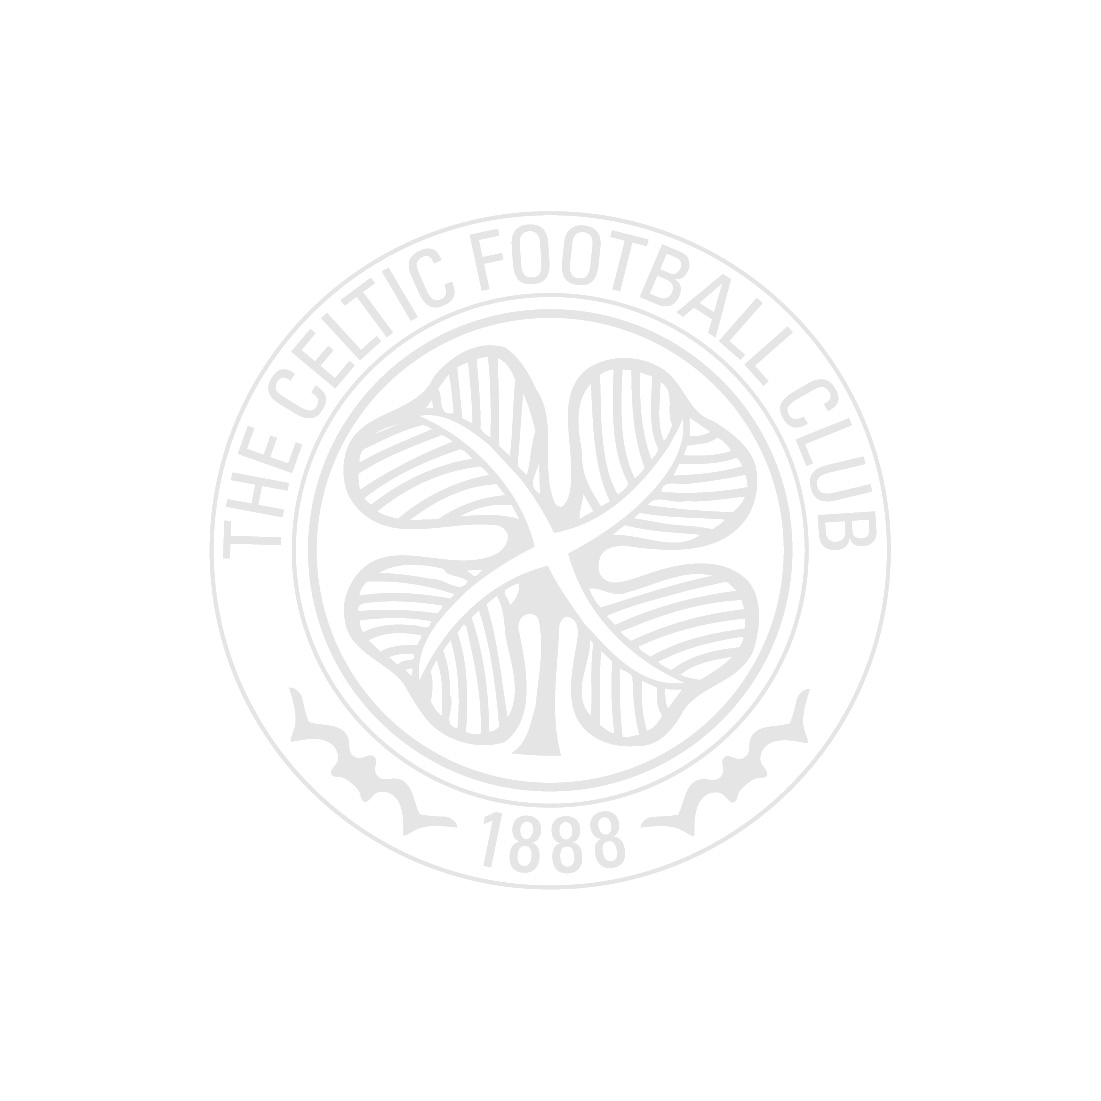 Celtic FC Foundation T-shirt